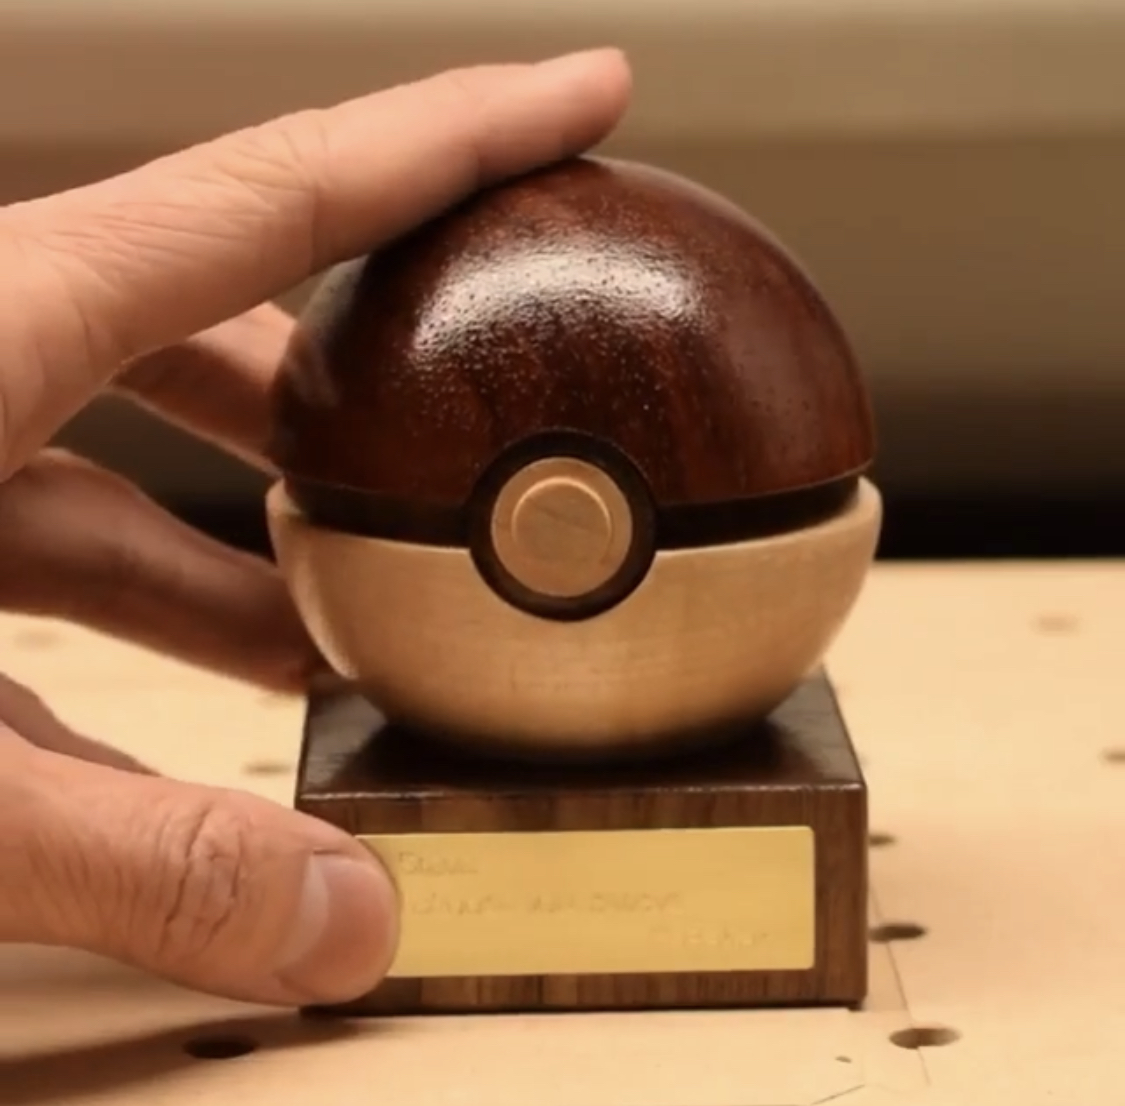 Check out this wooden pokeball